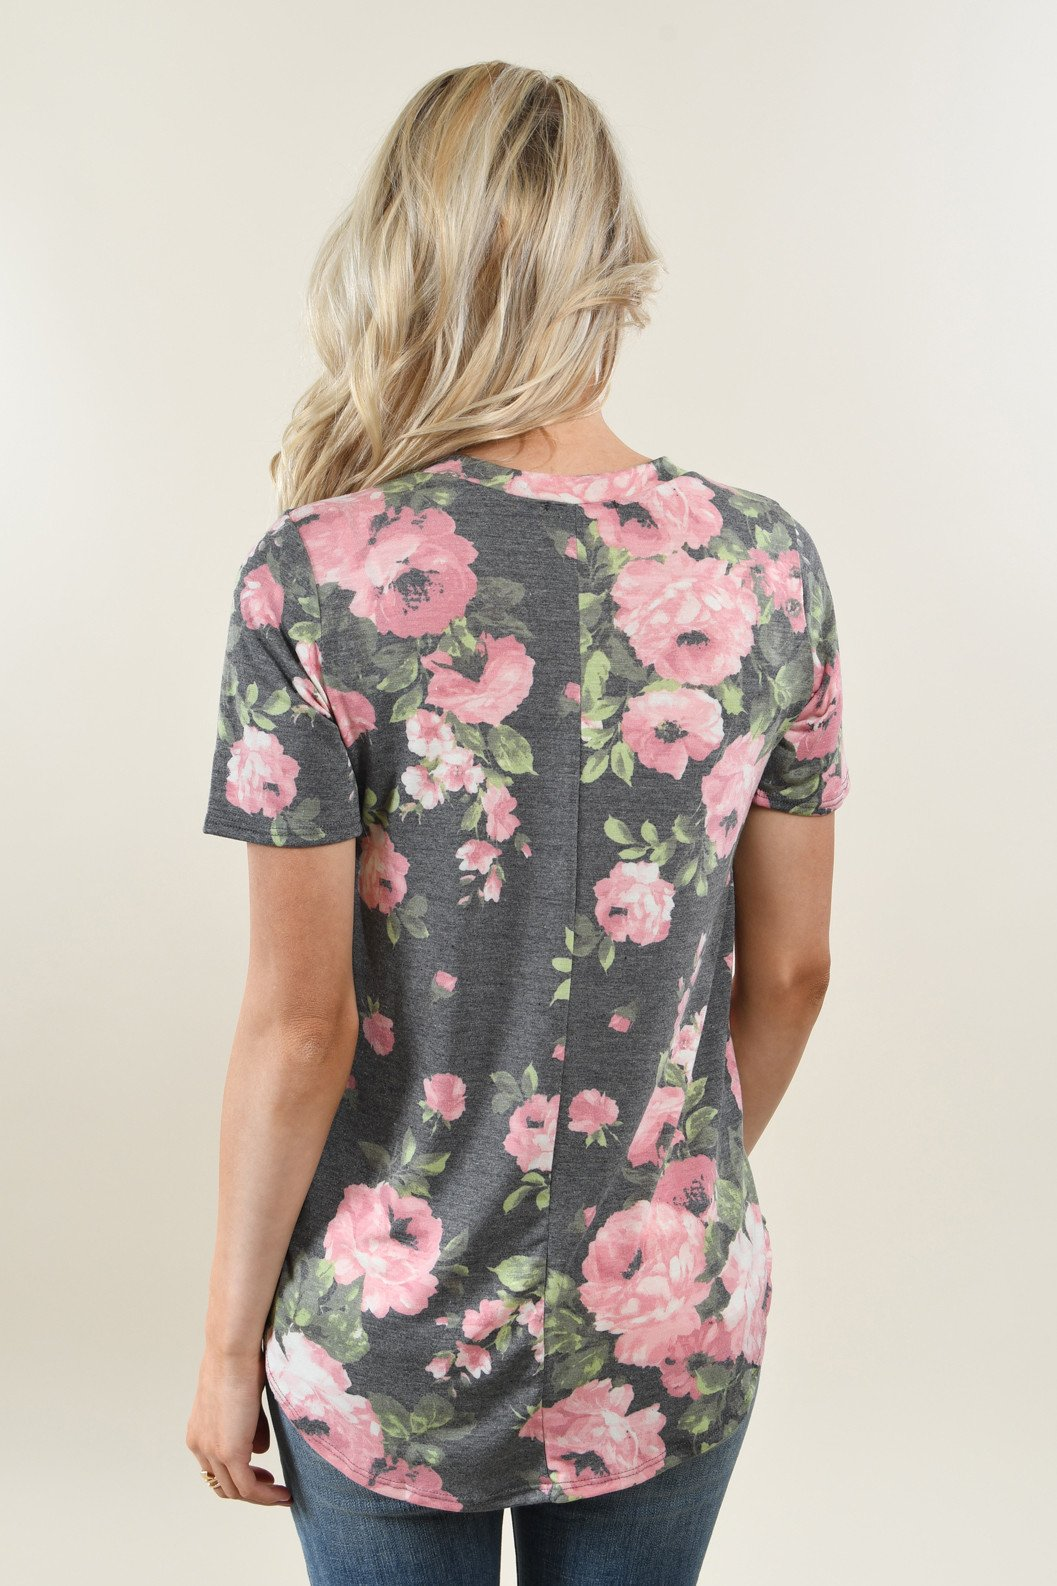 Yours Truly Floral V-Neck Charcoal